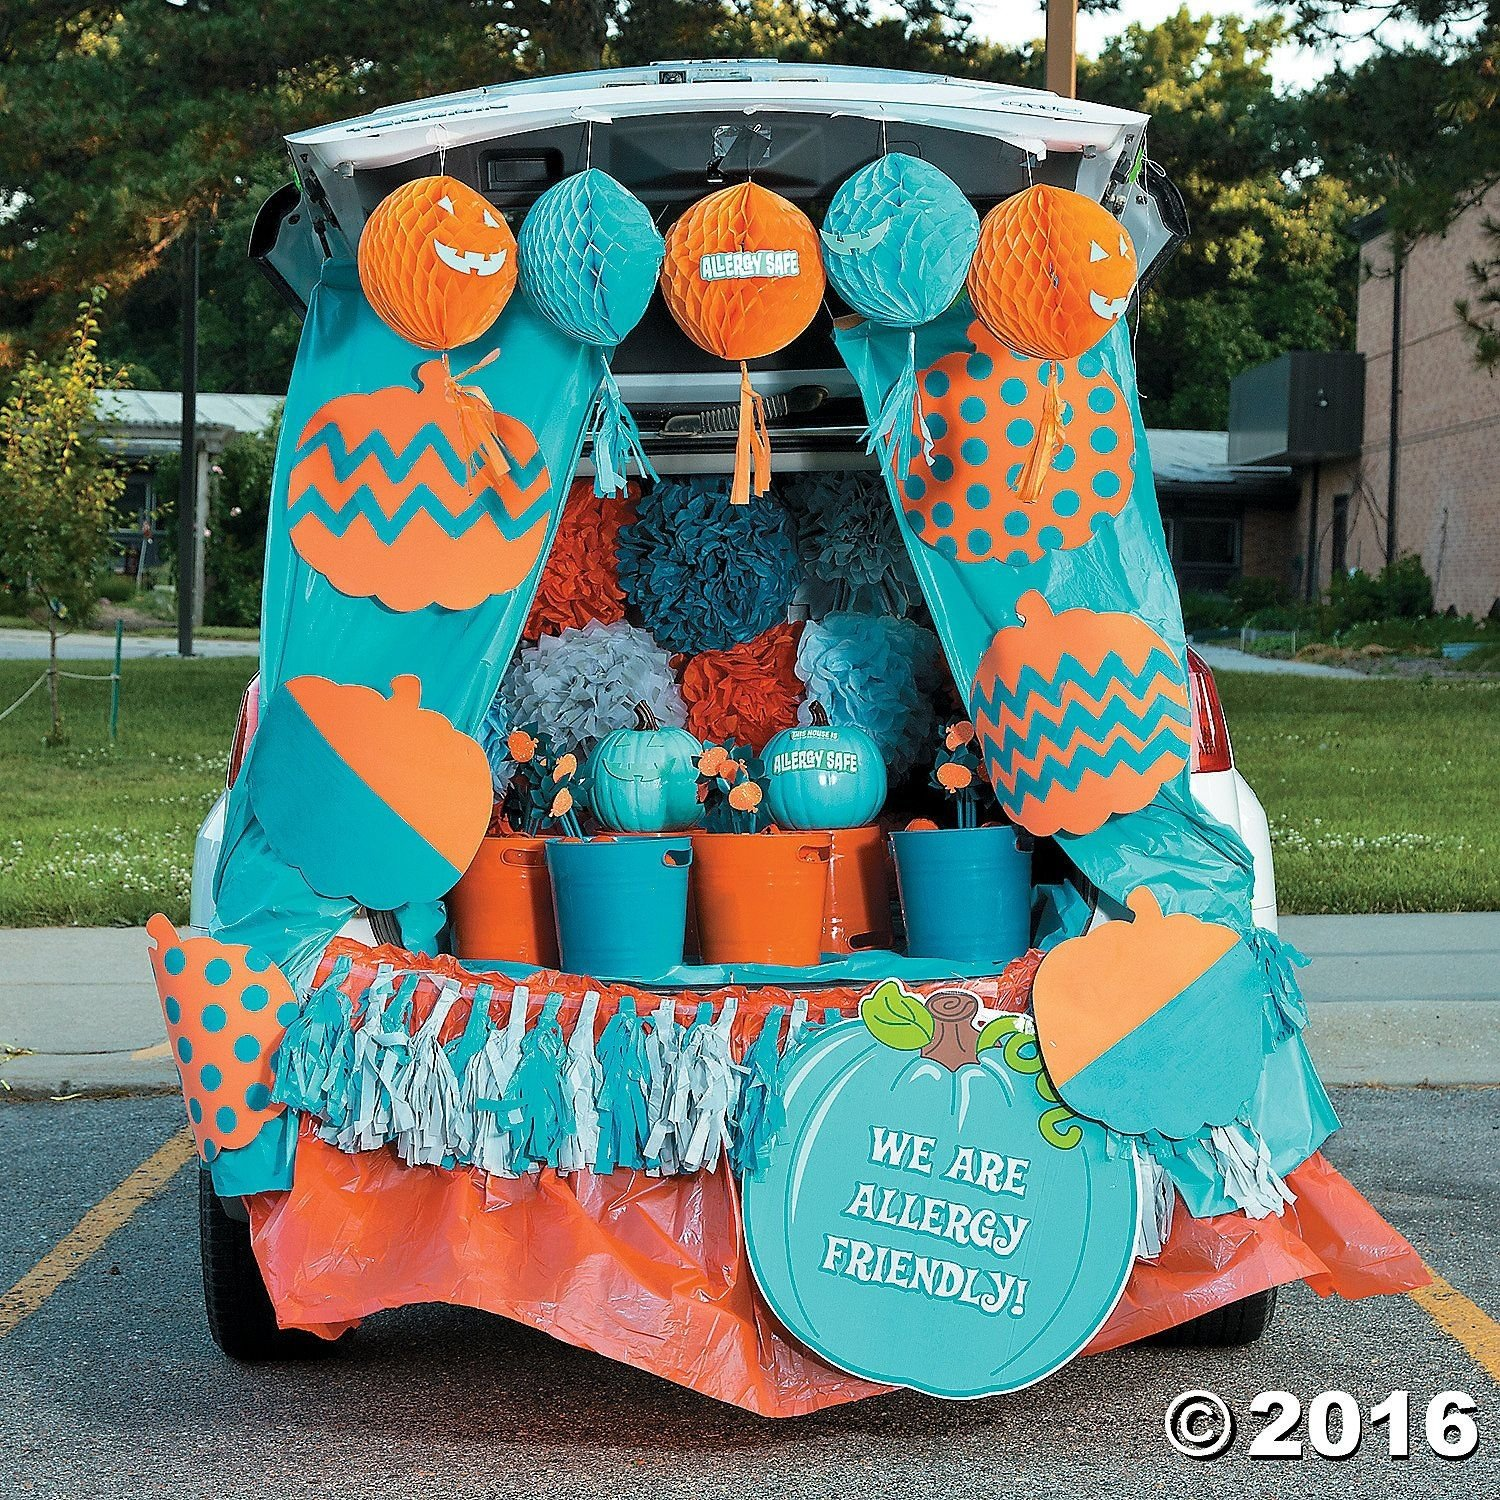 10 Cute Trunk And Treat Ideas For Decorating trunk or treat teal pumpkin d trunk or treat pinterest teal 1 2020